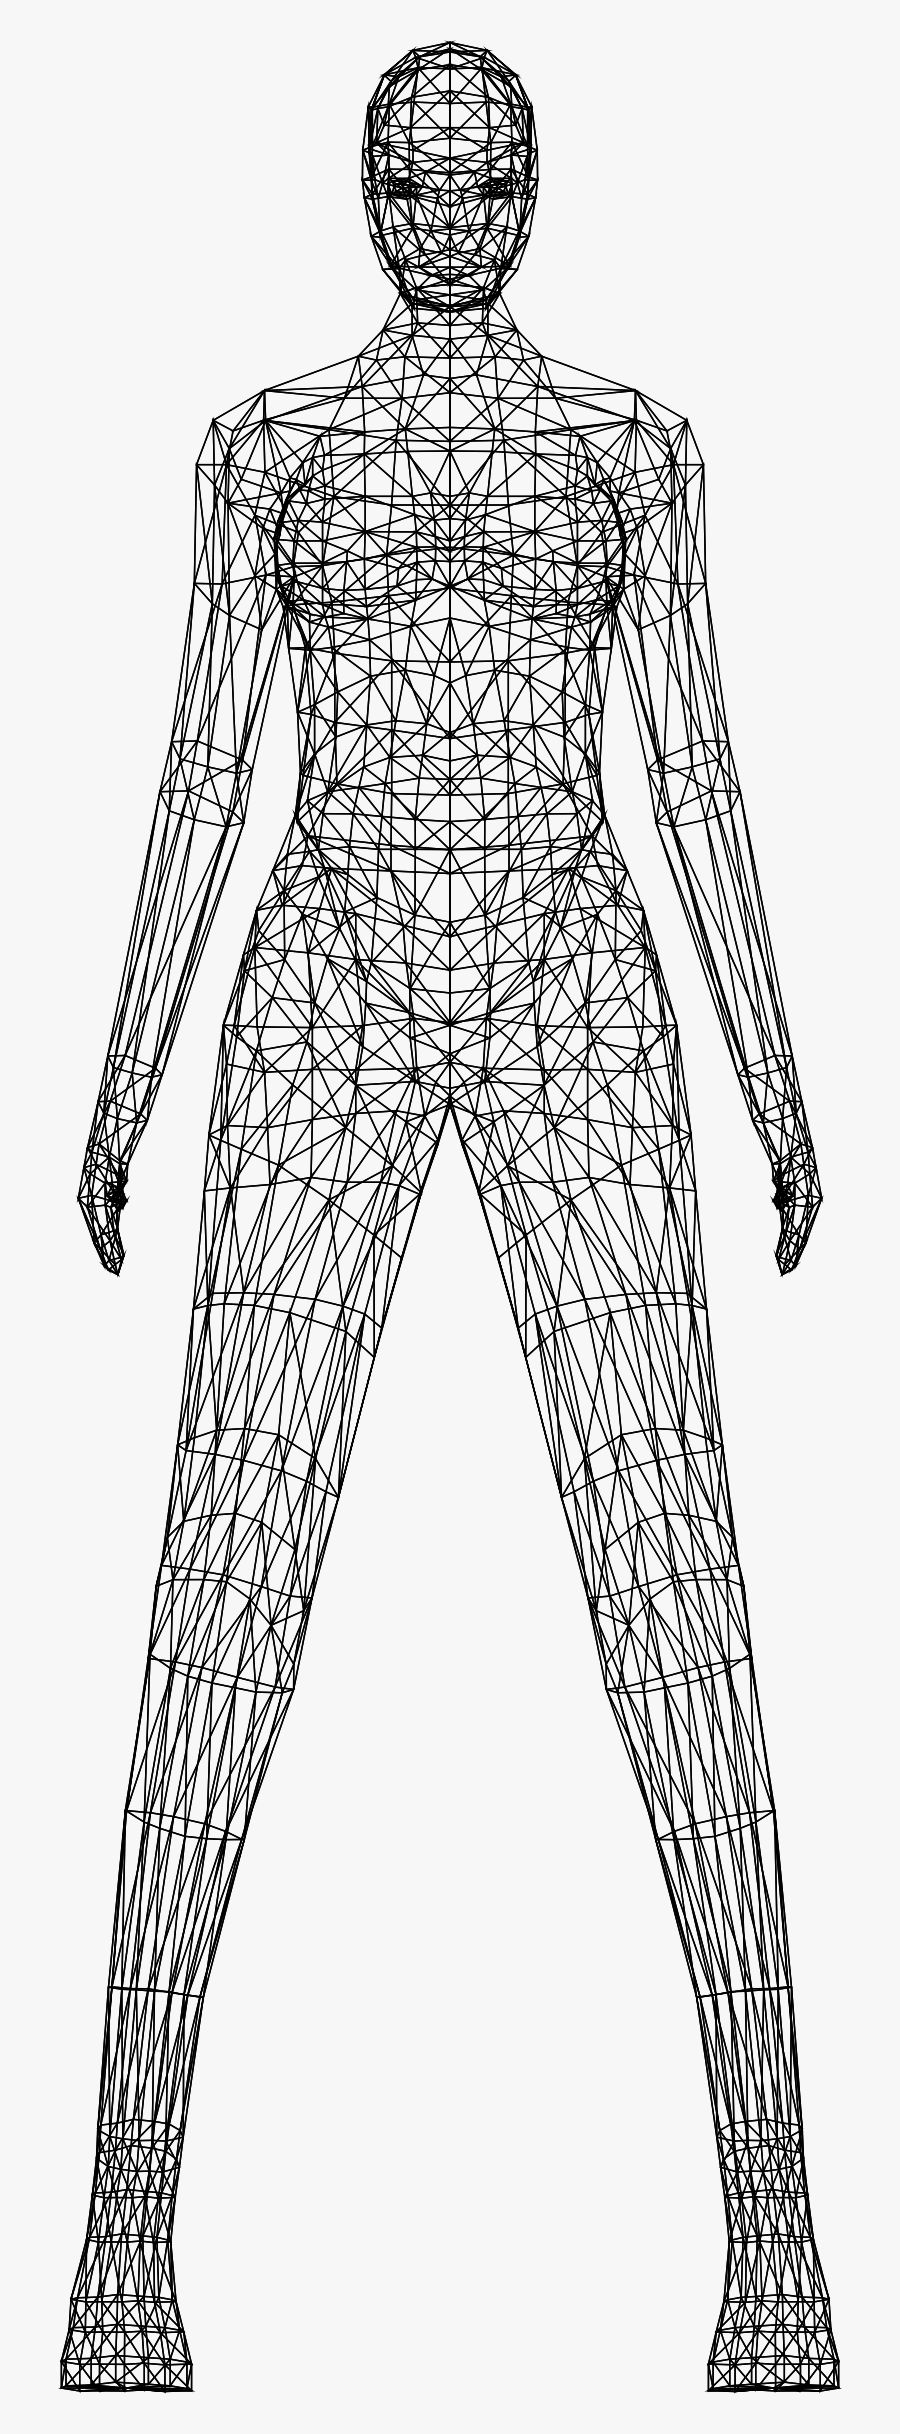 human clipart wireframe sexy woman 3d wireframe body vector free transparent clipart clipartkey human clipart wireframe sexy woman 3d